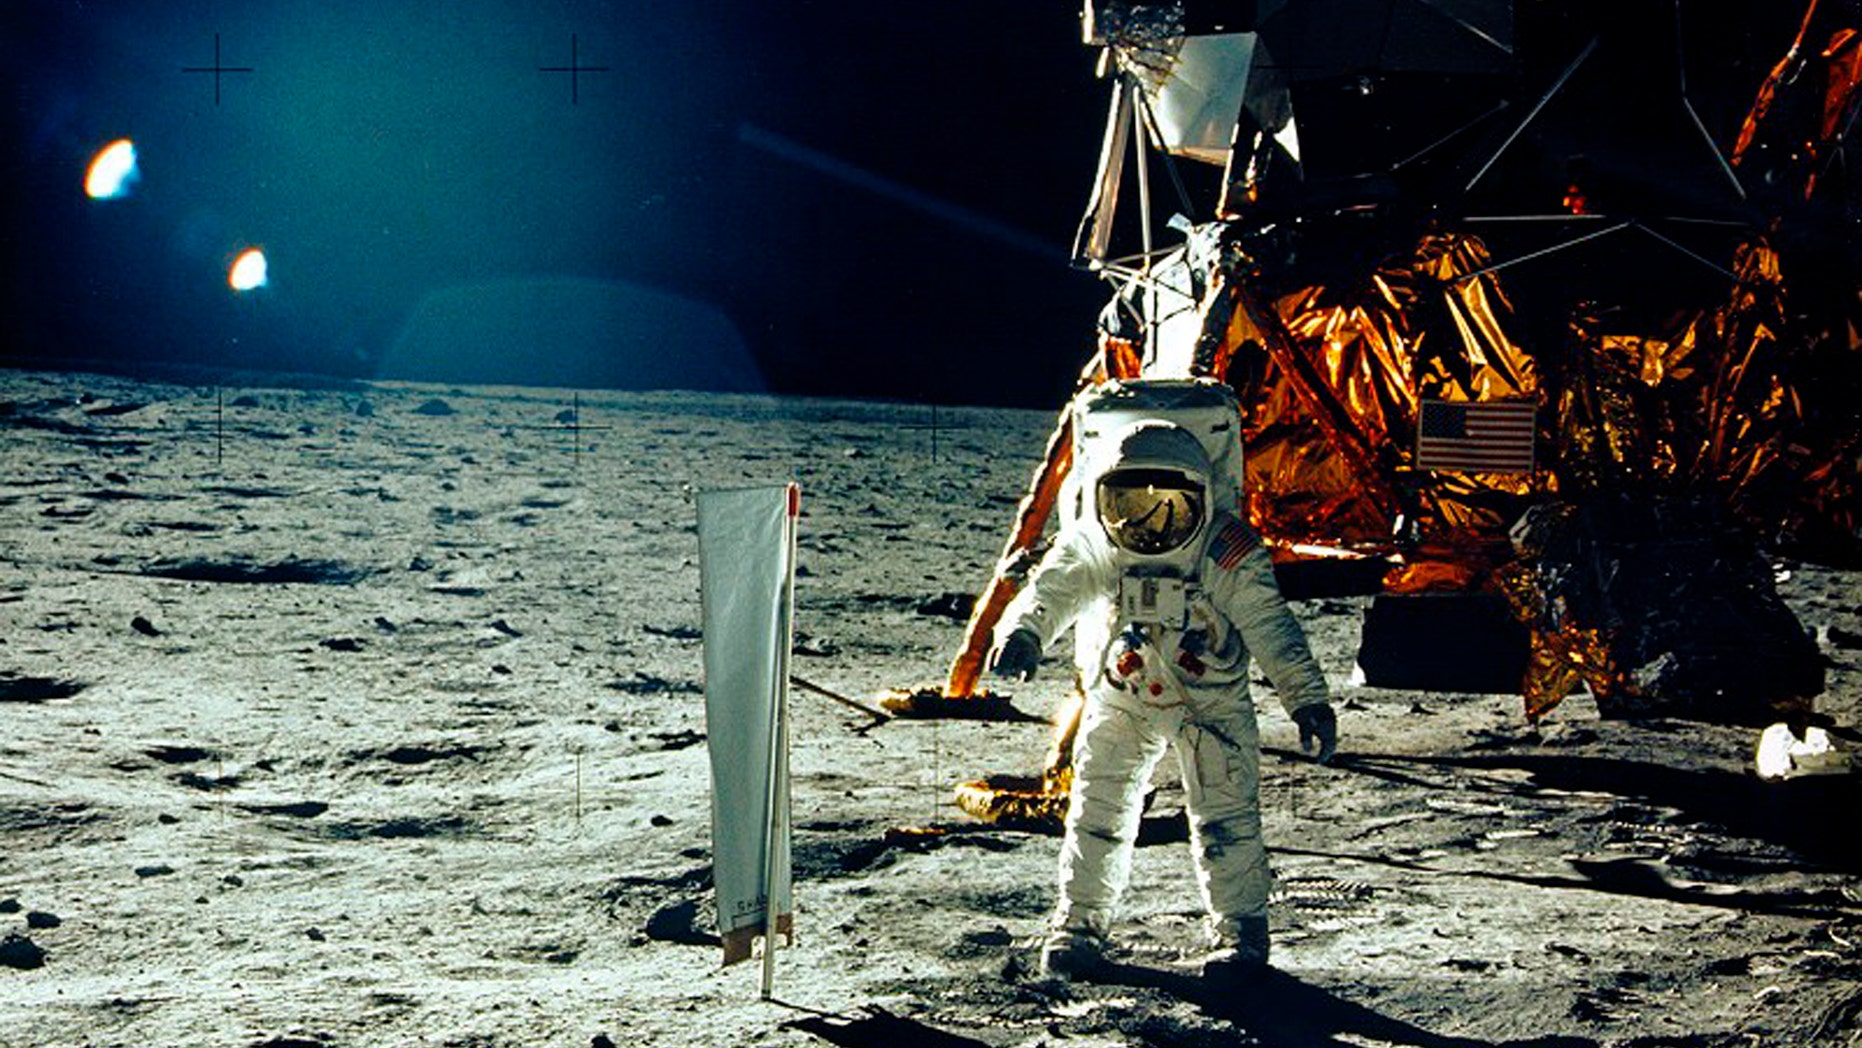 United States astronaut Buzz Aldrin stands beside a solar wind experiment next to the Lunar Module spacecraft on the surface of the Moon after he and fellow astronaut Neil Armstrong became the first men to land on the Moon during the Apollo 11 space mission July 20, 1969. (REUTERS/Neil Armstrong/NASA/Handout)